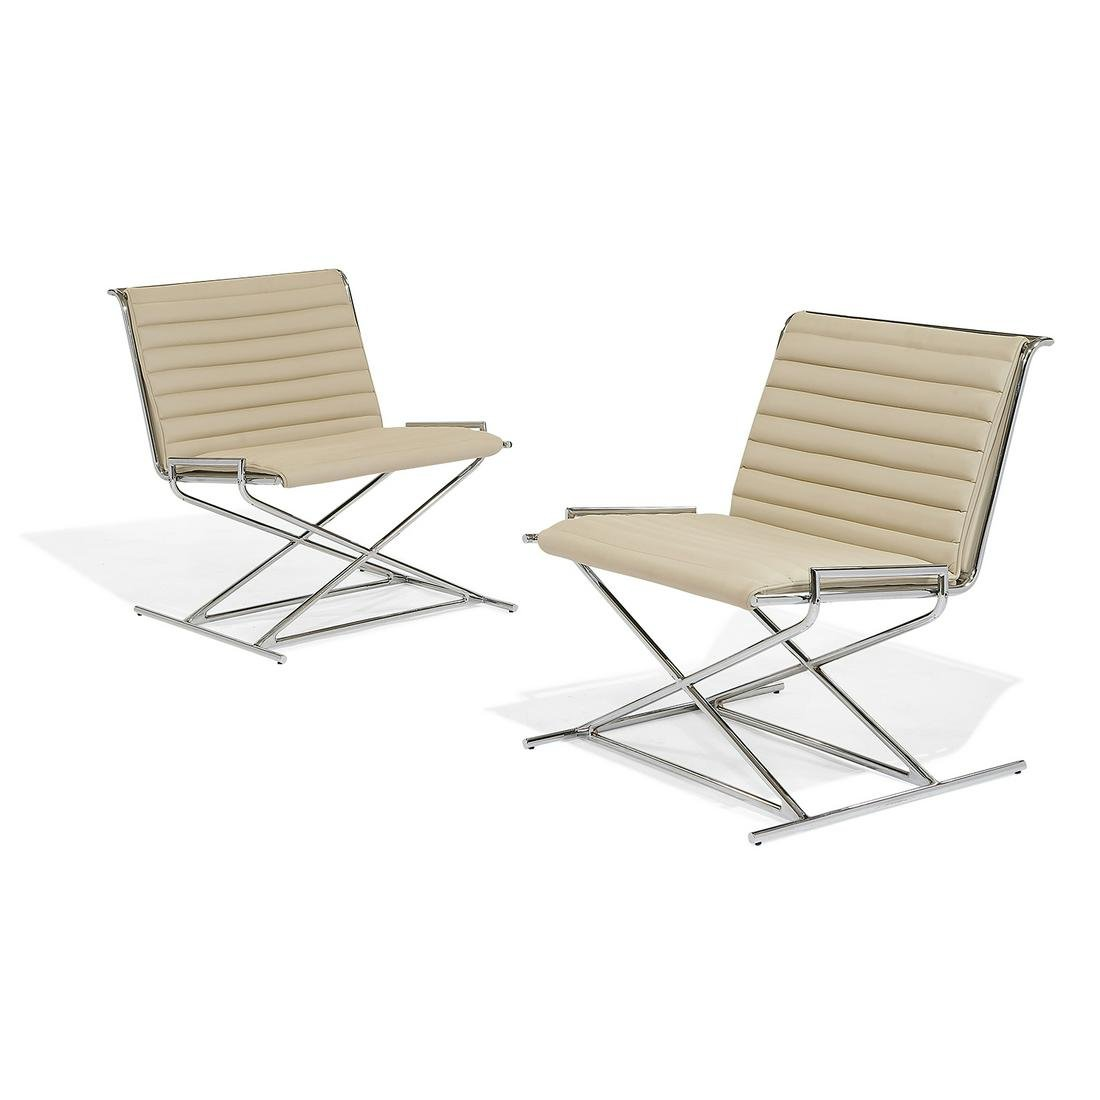 Ward Bennett for Geiger Sled lounge chairs, pair